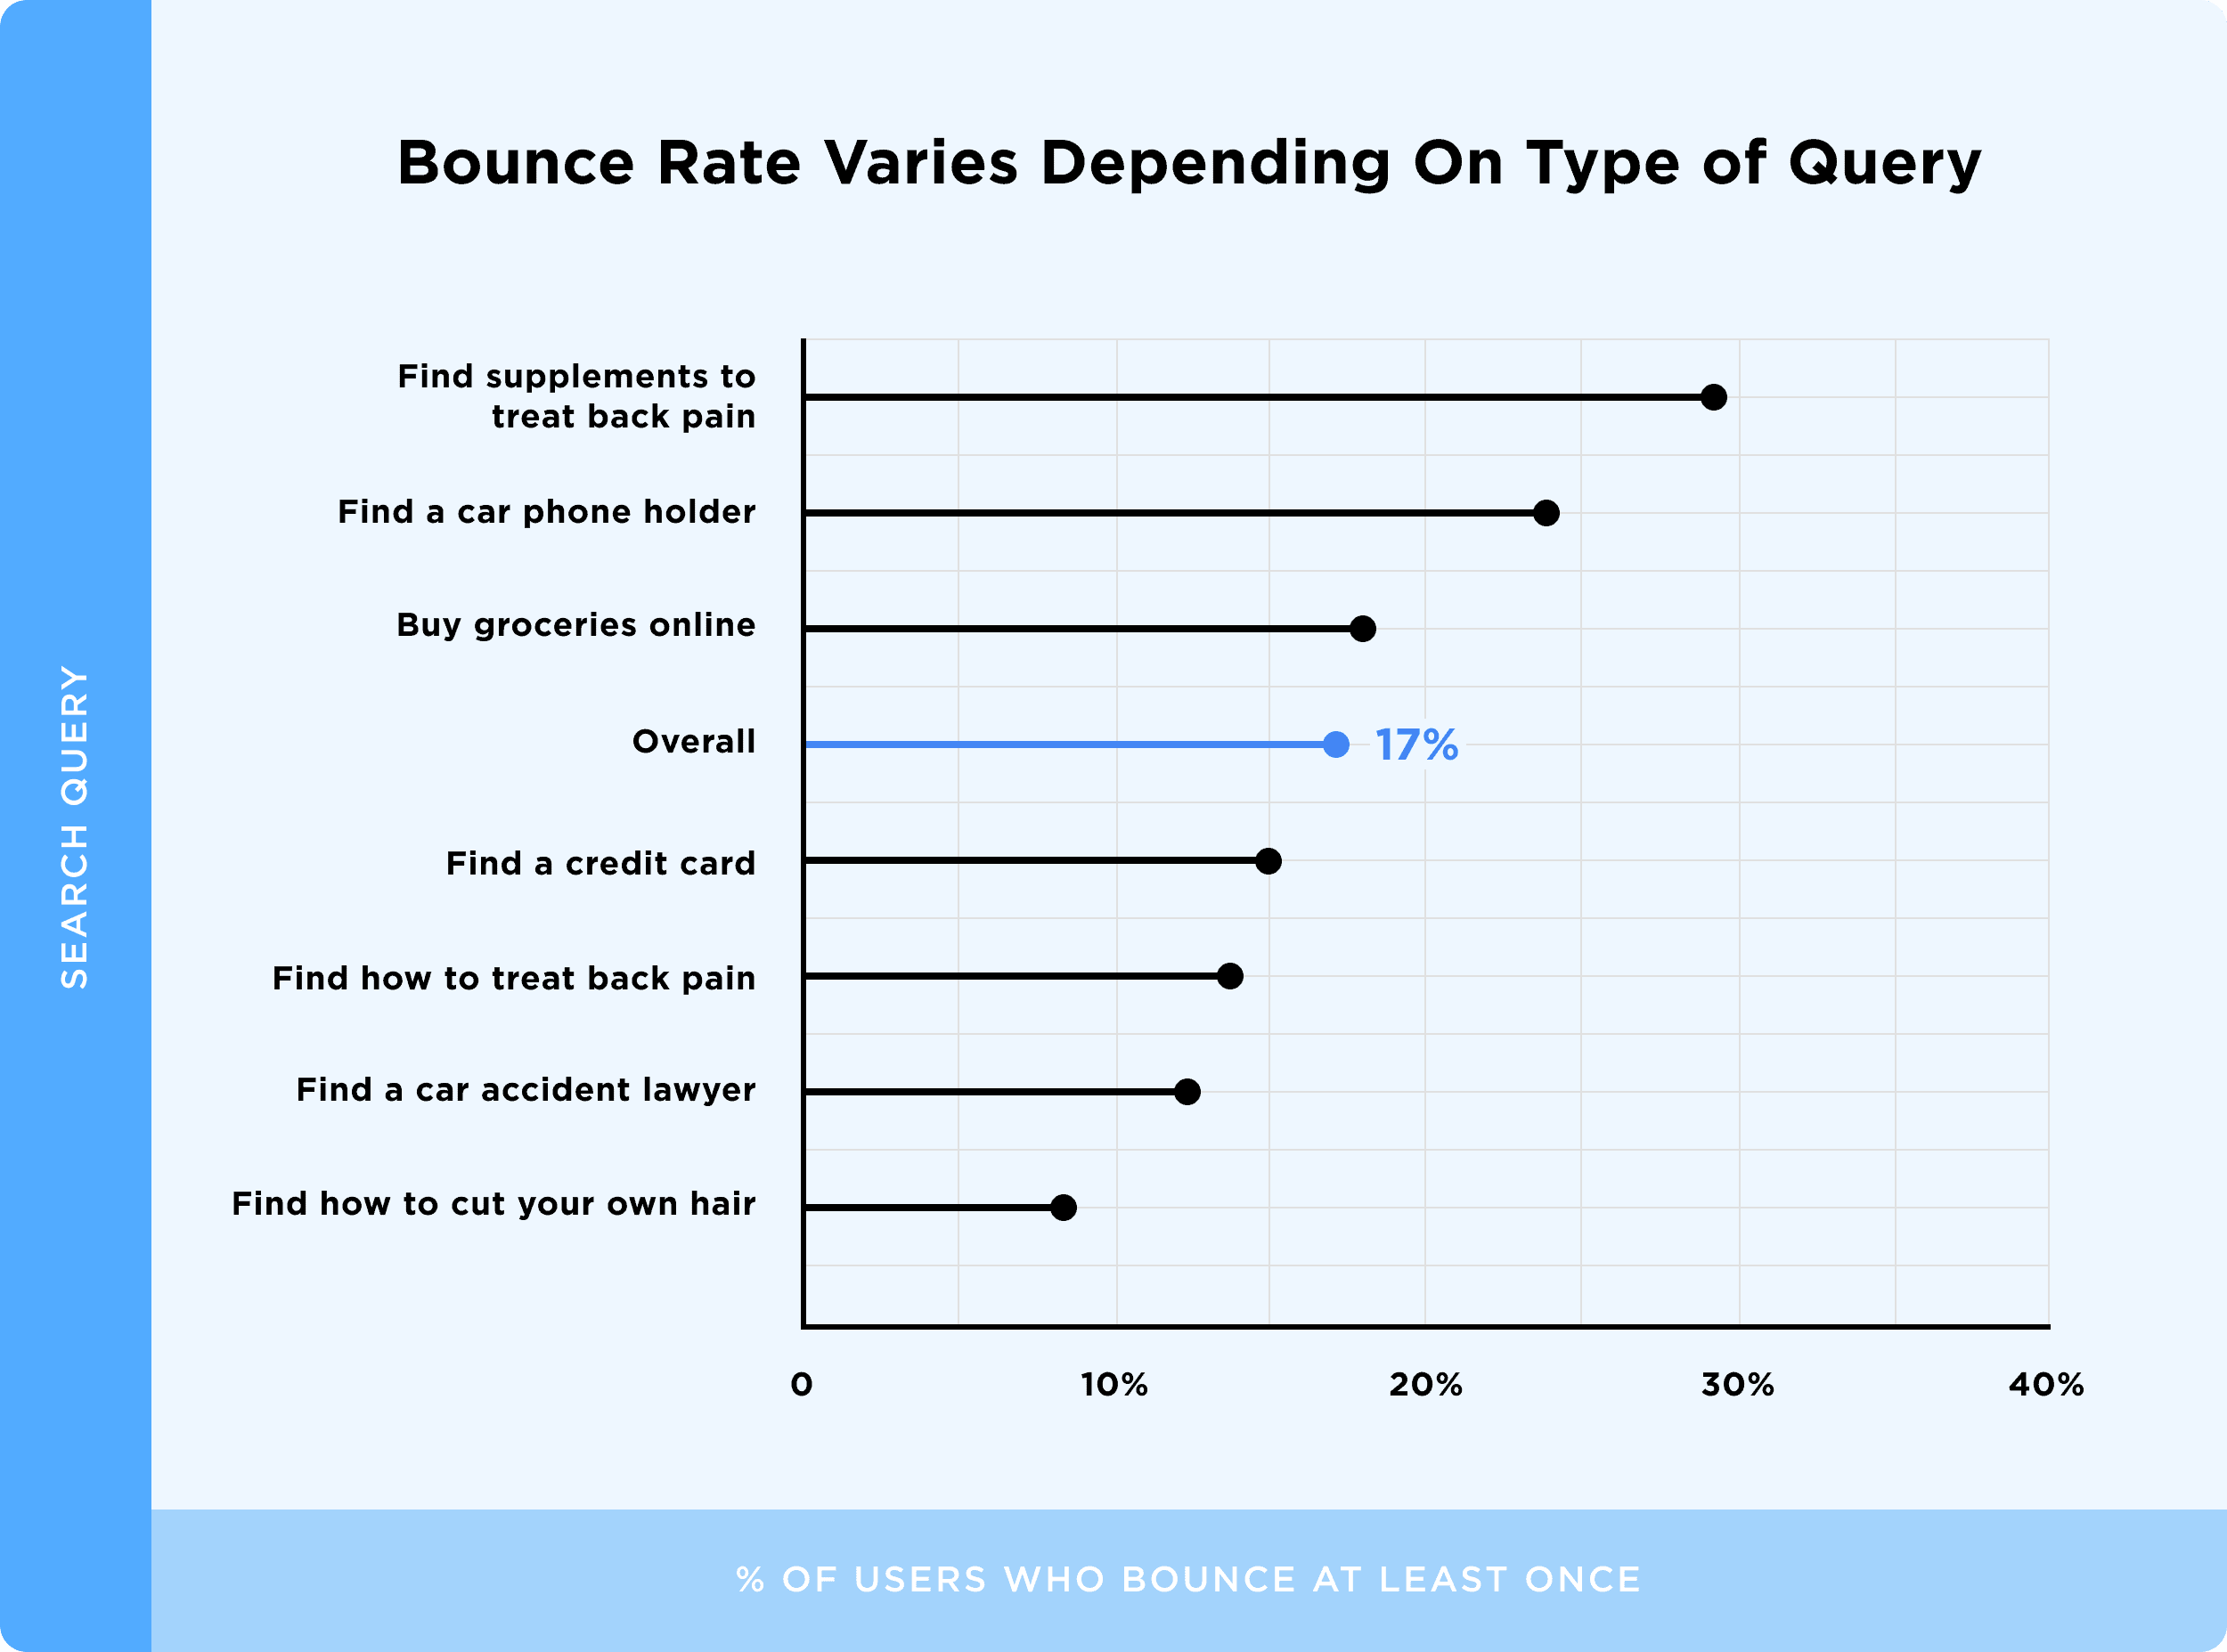 Bounce Rate Varies Depending On Type of Query